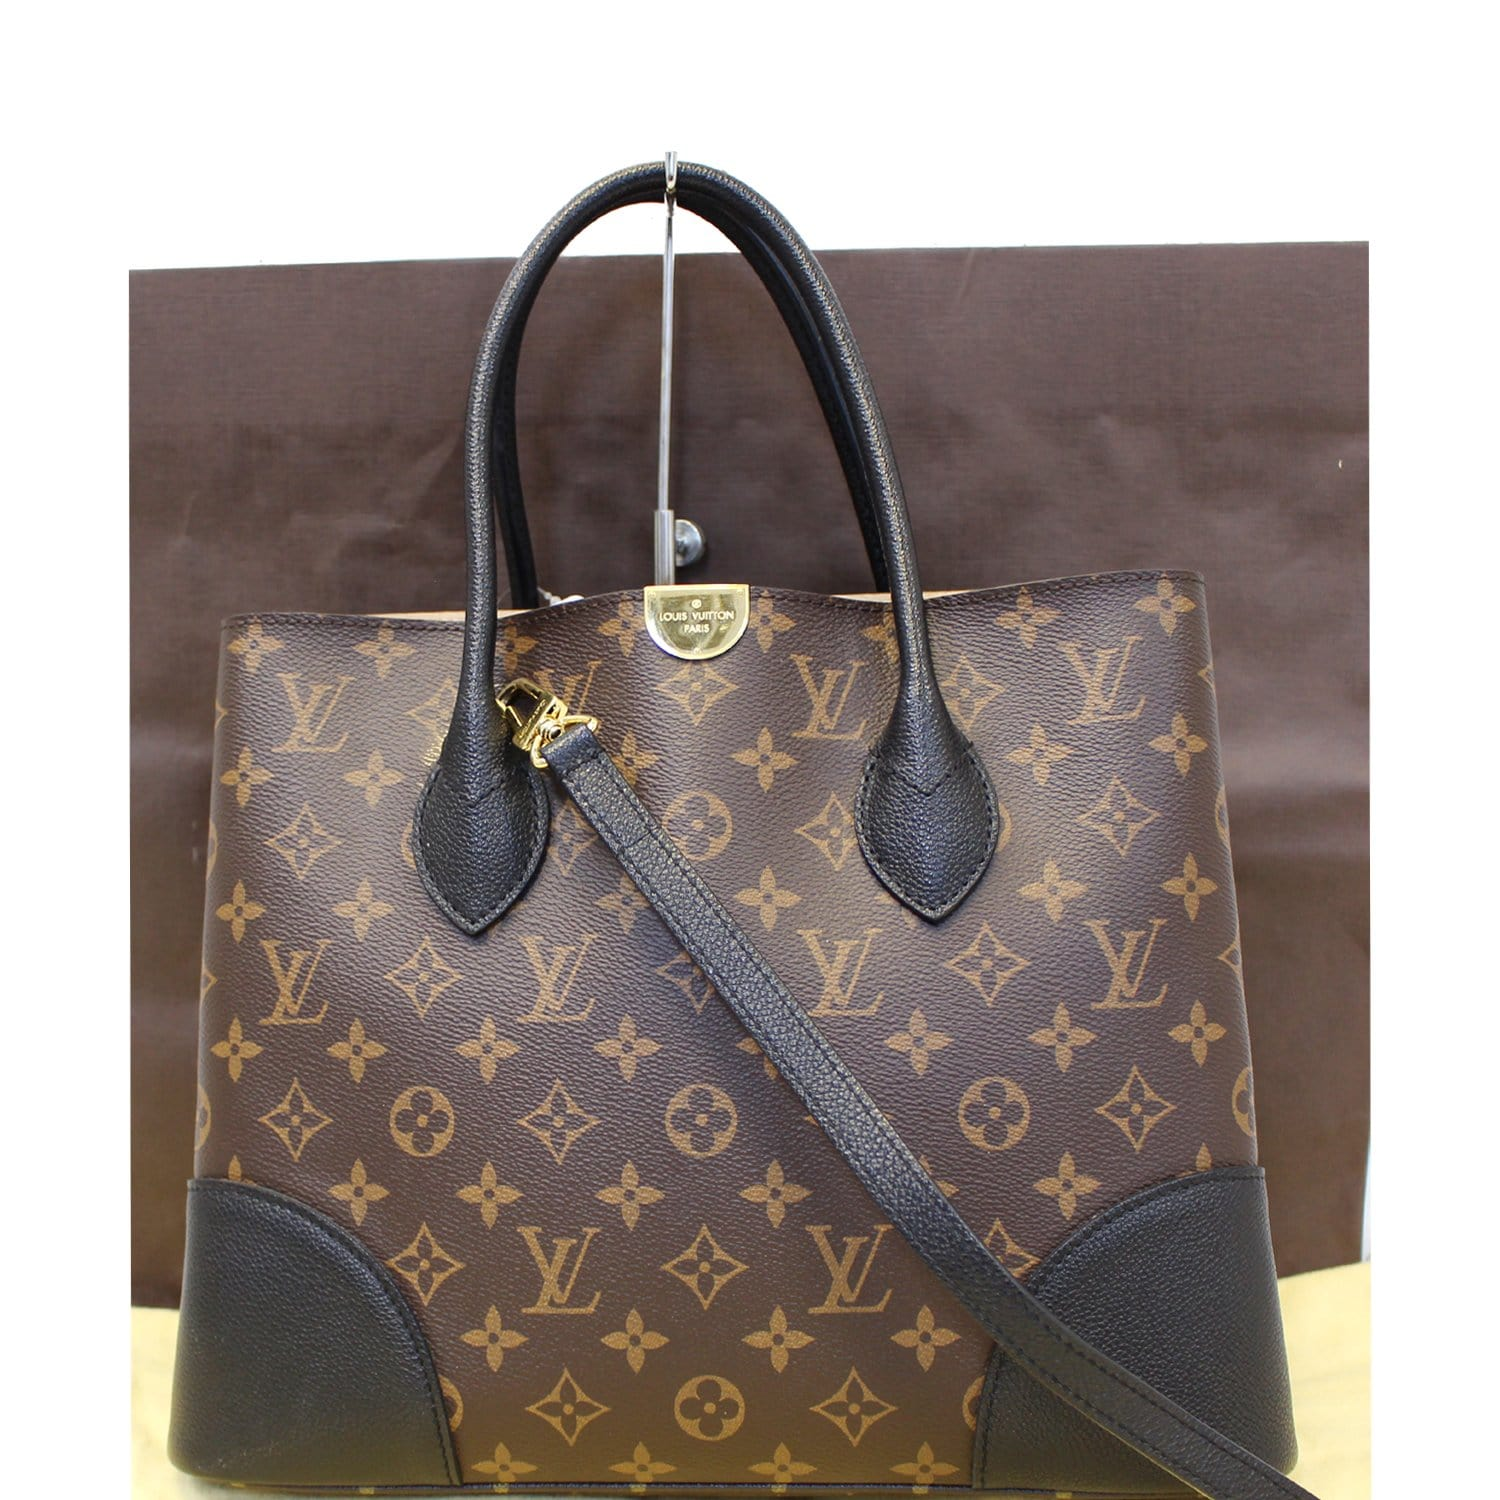 90203a17cc4 How to authenticate Louis Vuitton bags and accessories · View ...